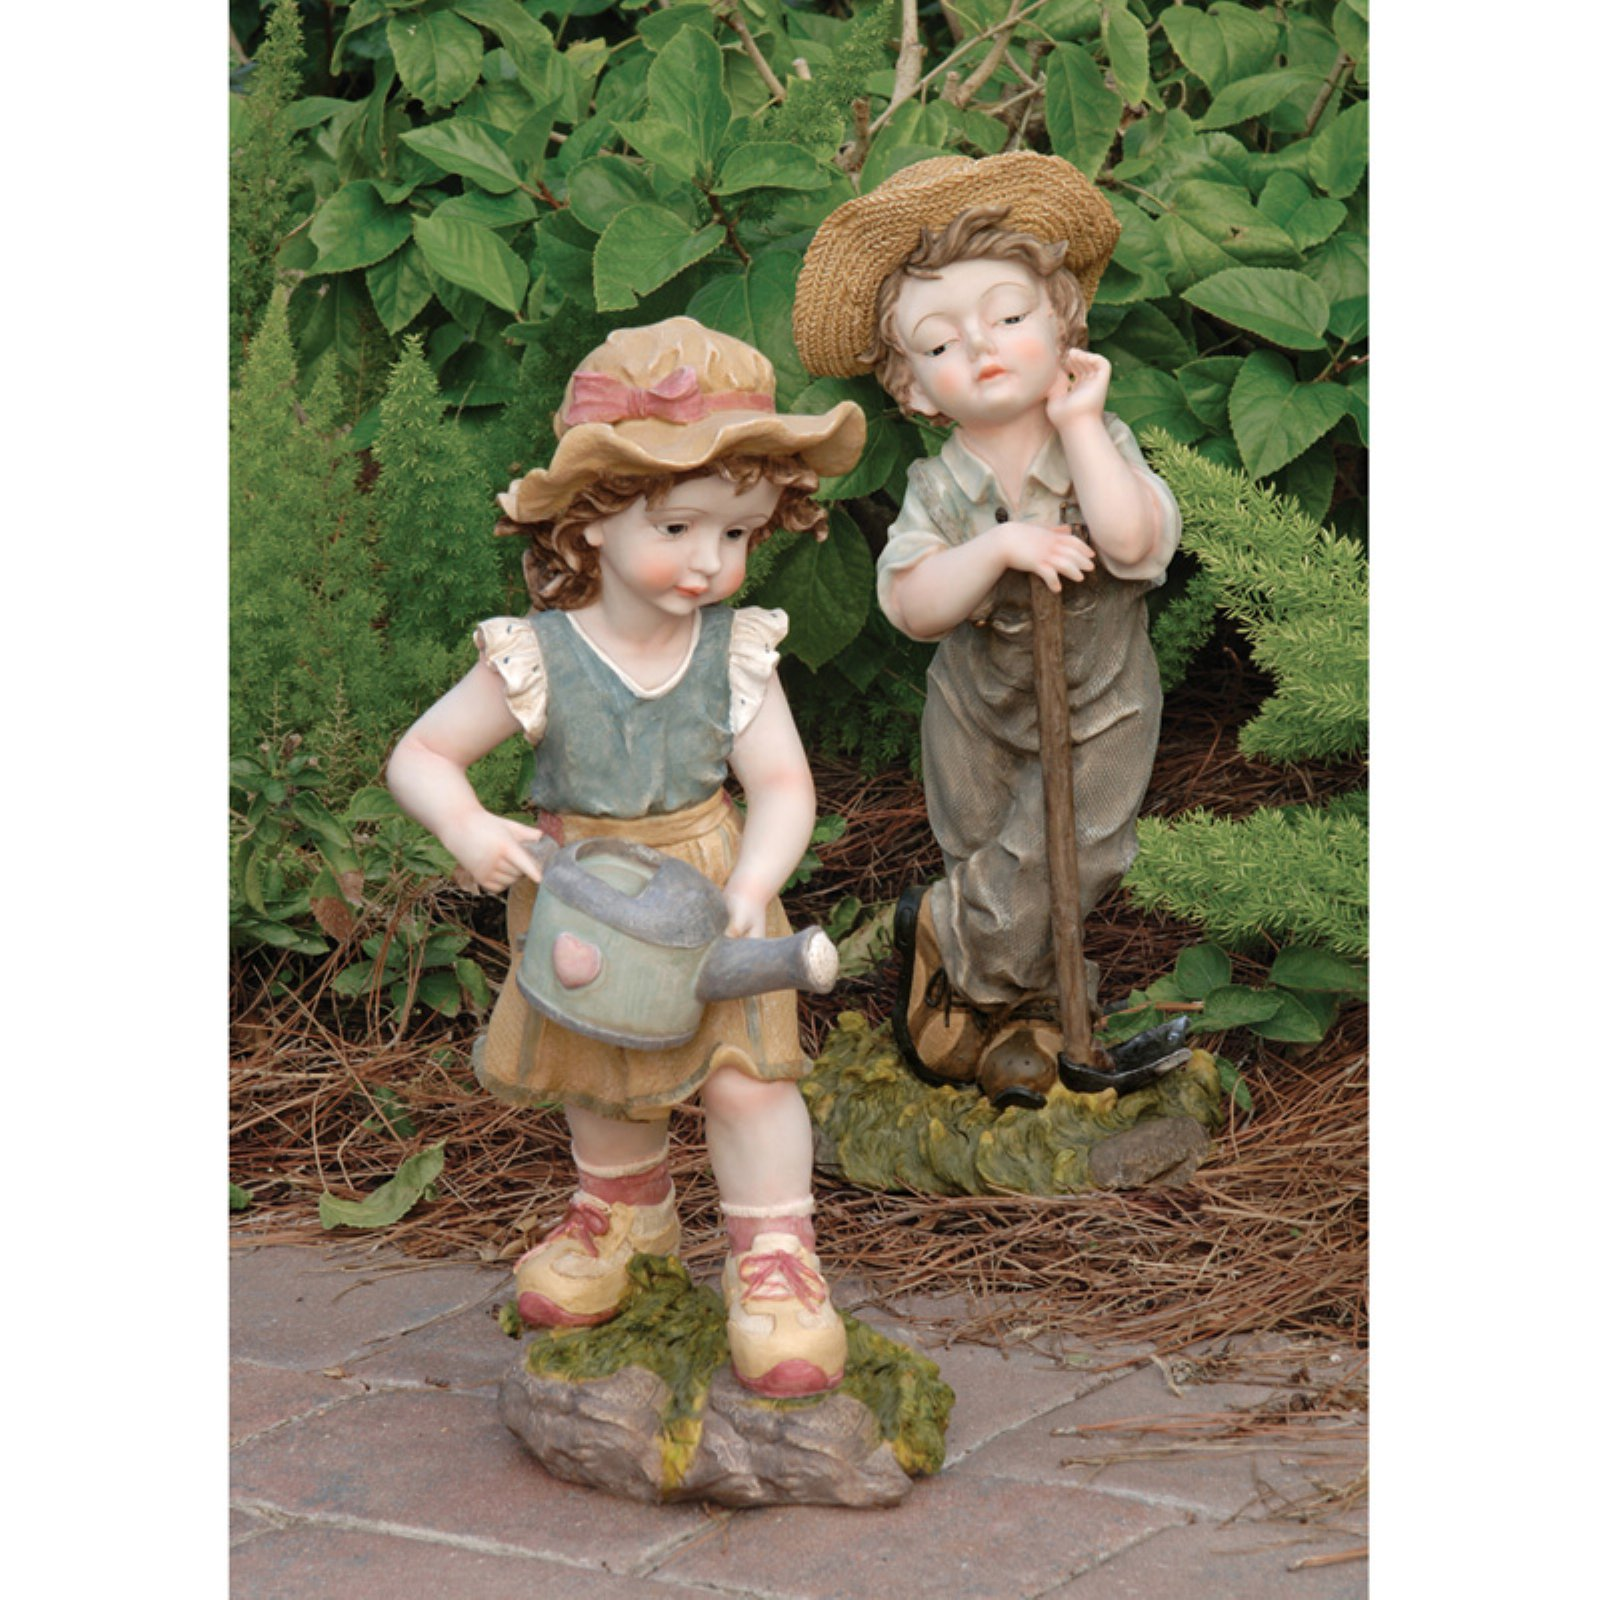 Design Toscano Fanny and Frank Farmer Garden Statue Set by Design Toscano